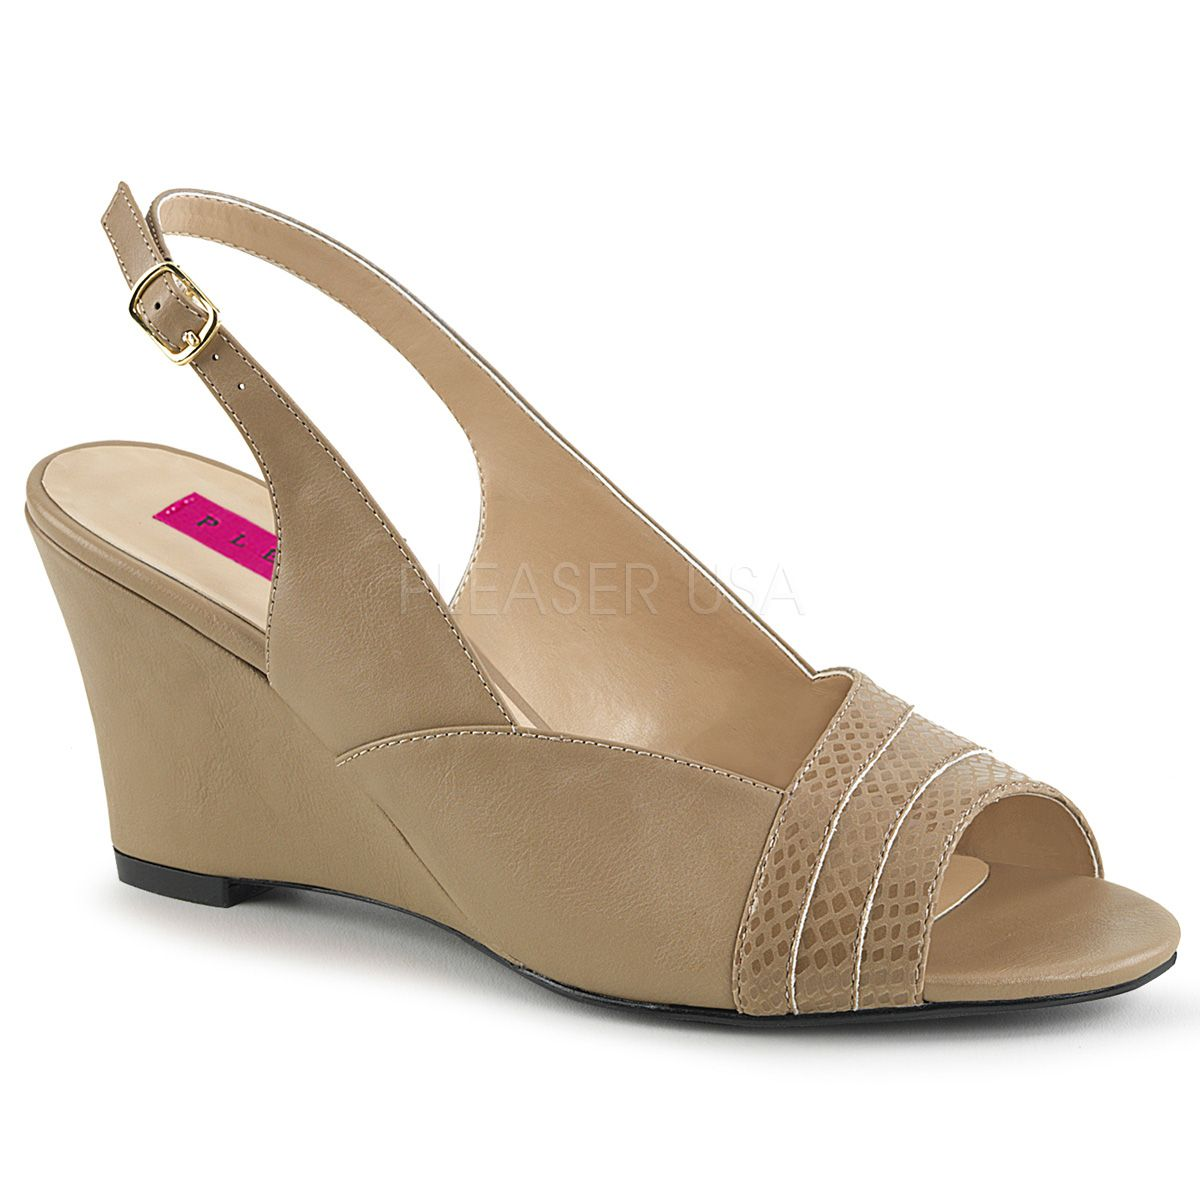 Con Shoes Tacco Colori 3 01sp MedioPink Kimberly Sandalo